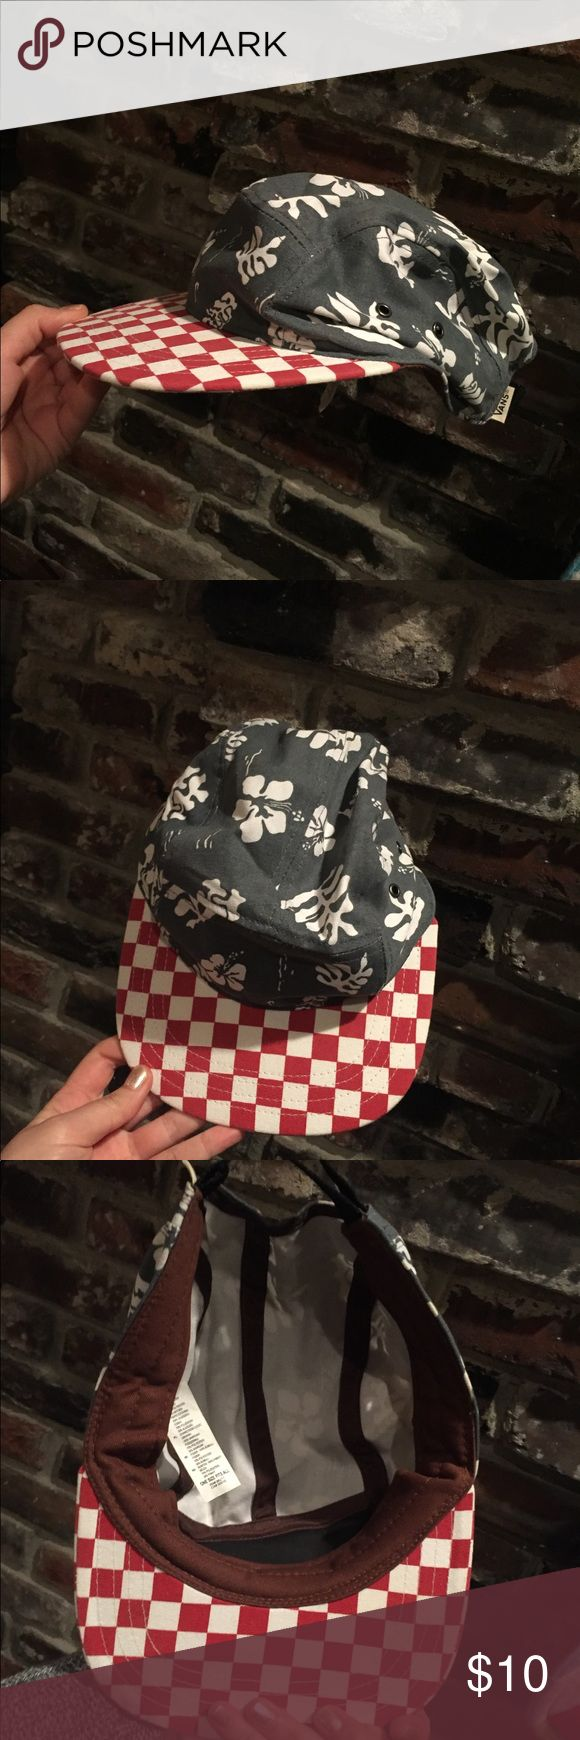 Vans original checkered hat LIKE NEW Very fun vans hat. Barely worn, condition is like new. Stiff rim with the fun tropical print on medium blue. Red checkered rim! Beautiful hat for a fun indie outfit. Vans Accessories Hats